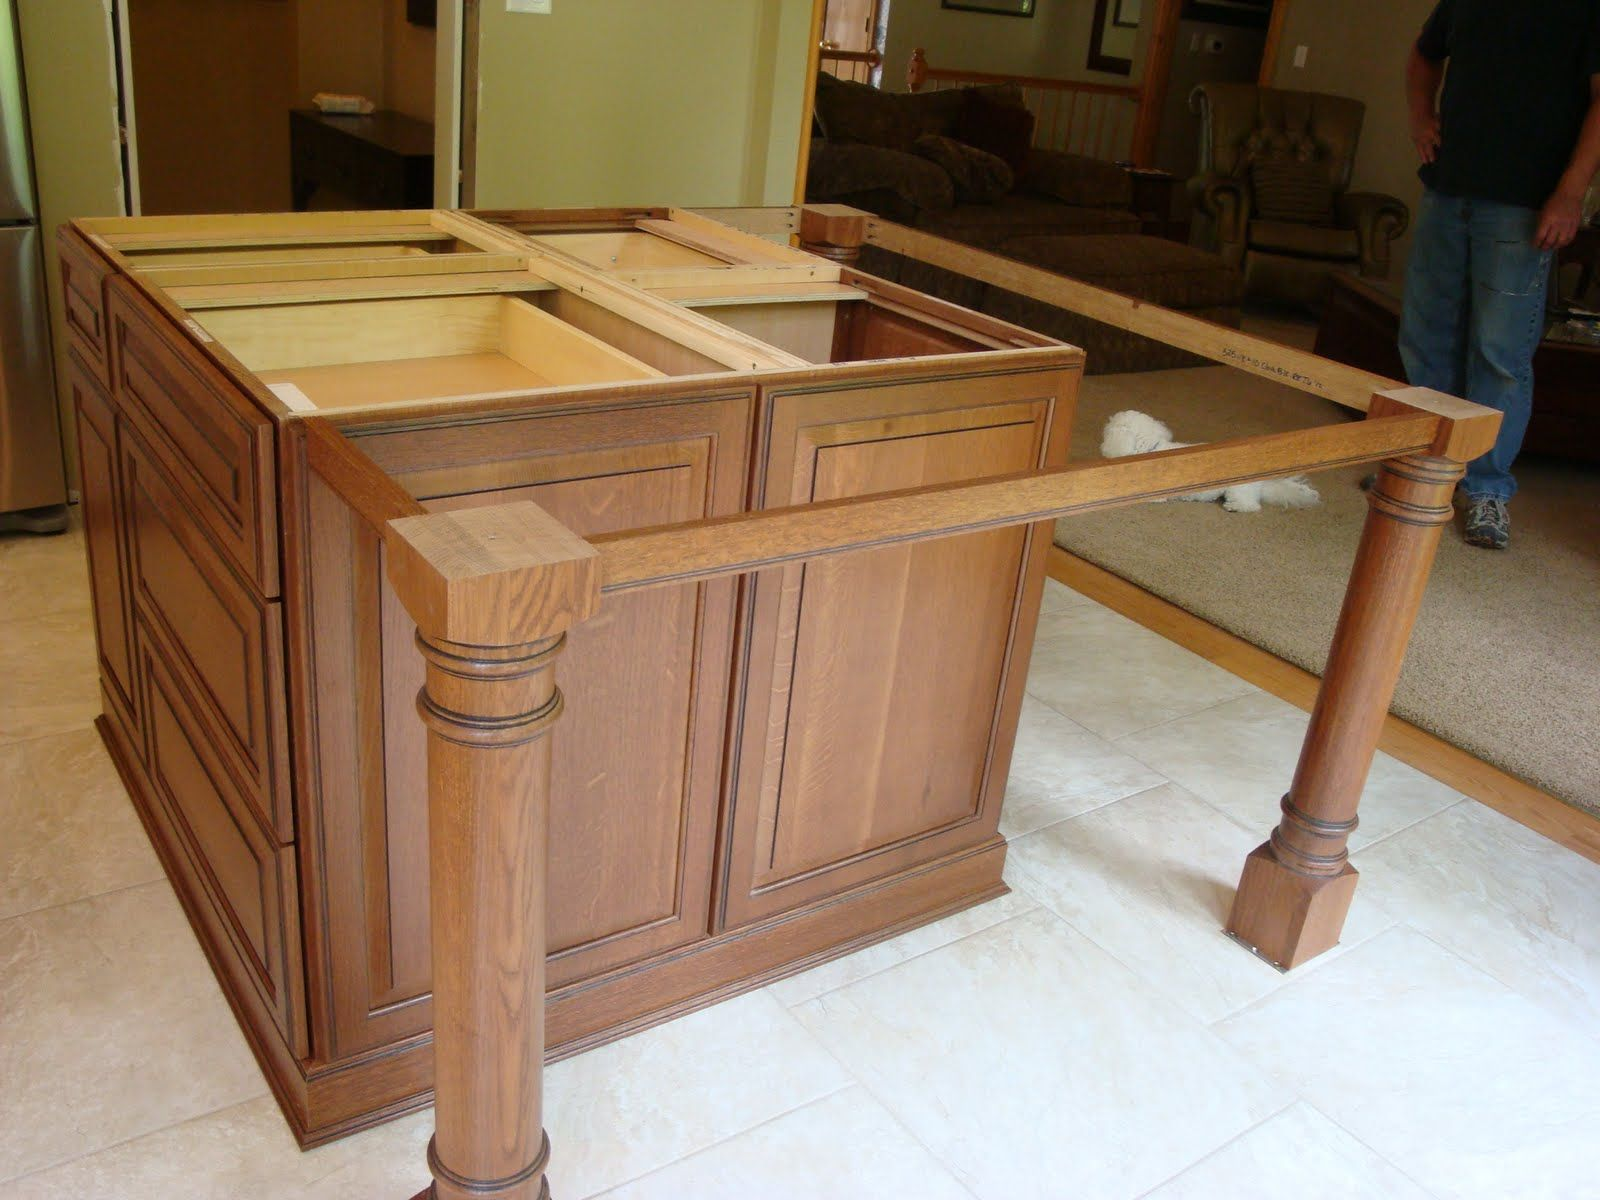 Island Support Legs Building A Kitchen Build Kitchen Island